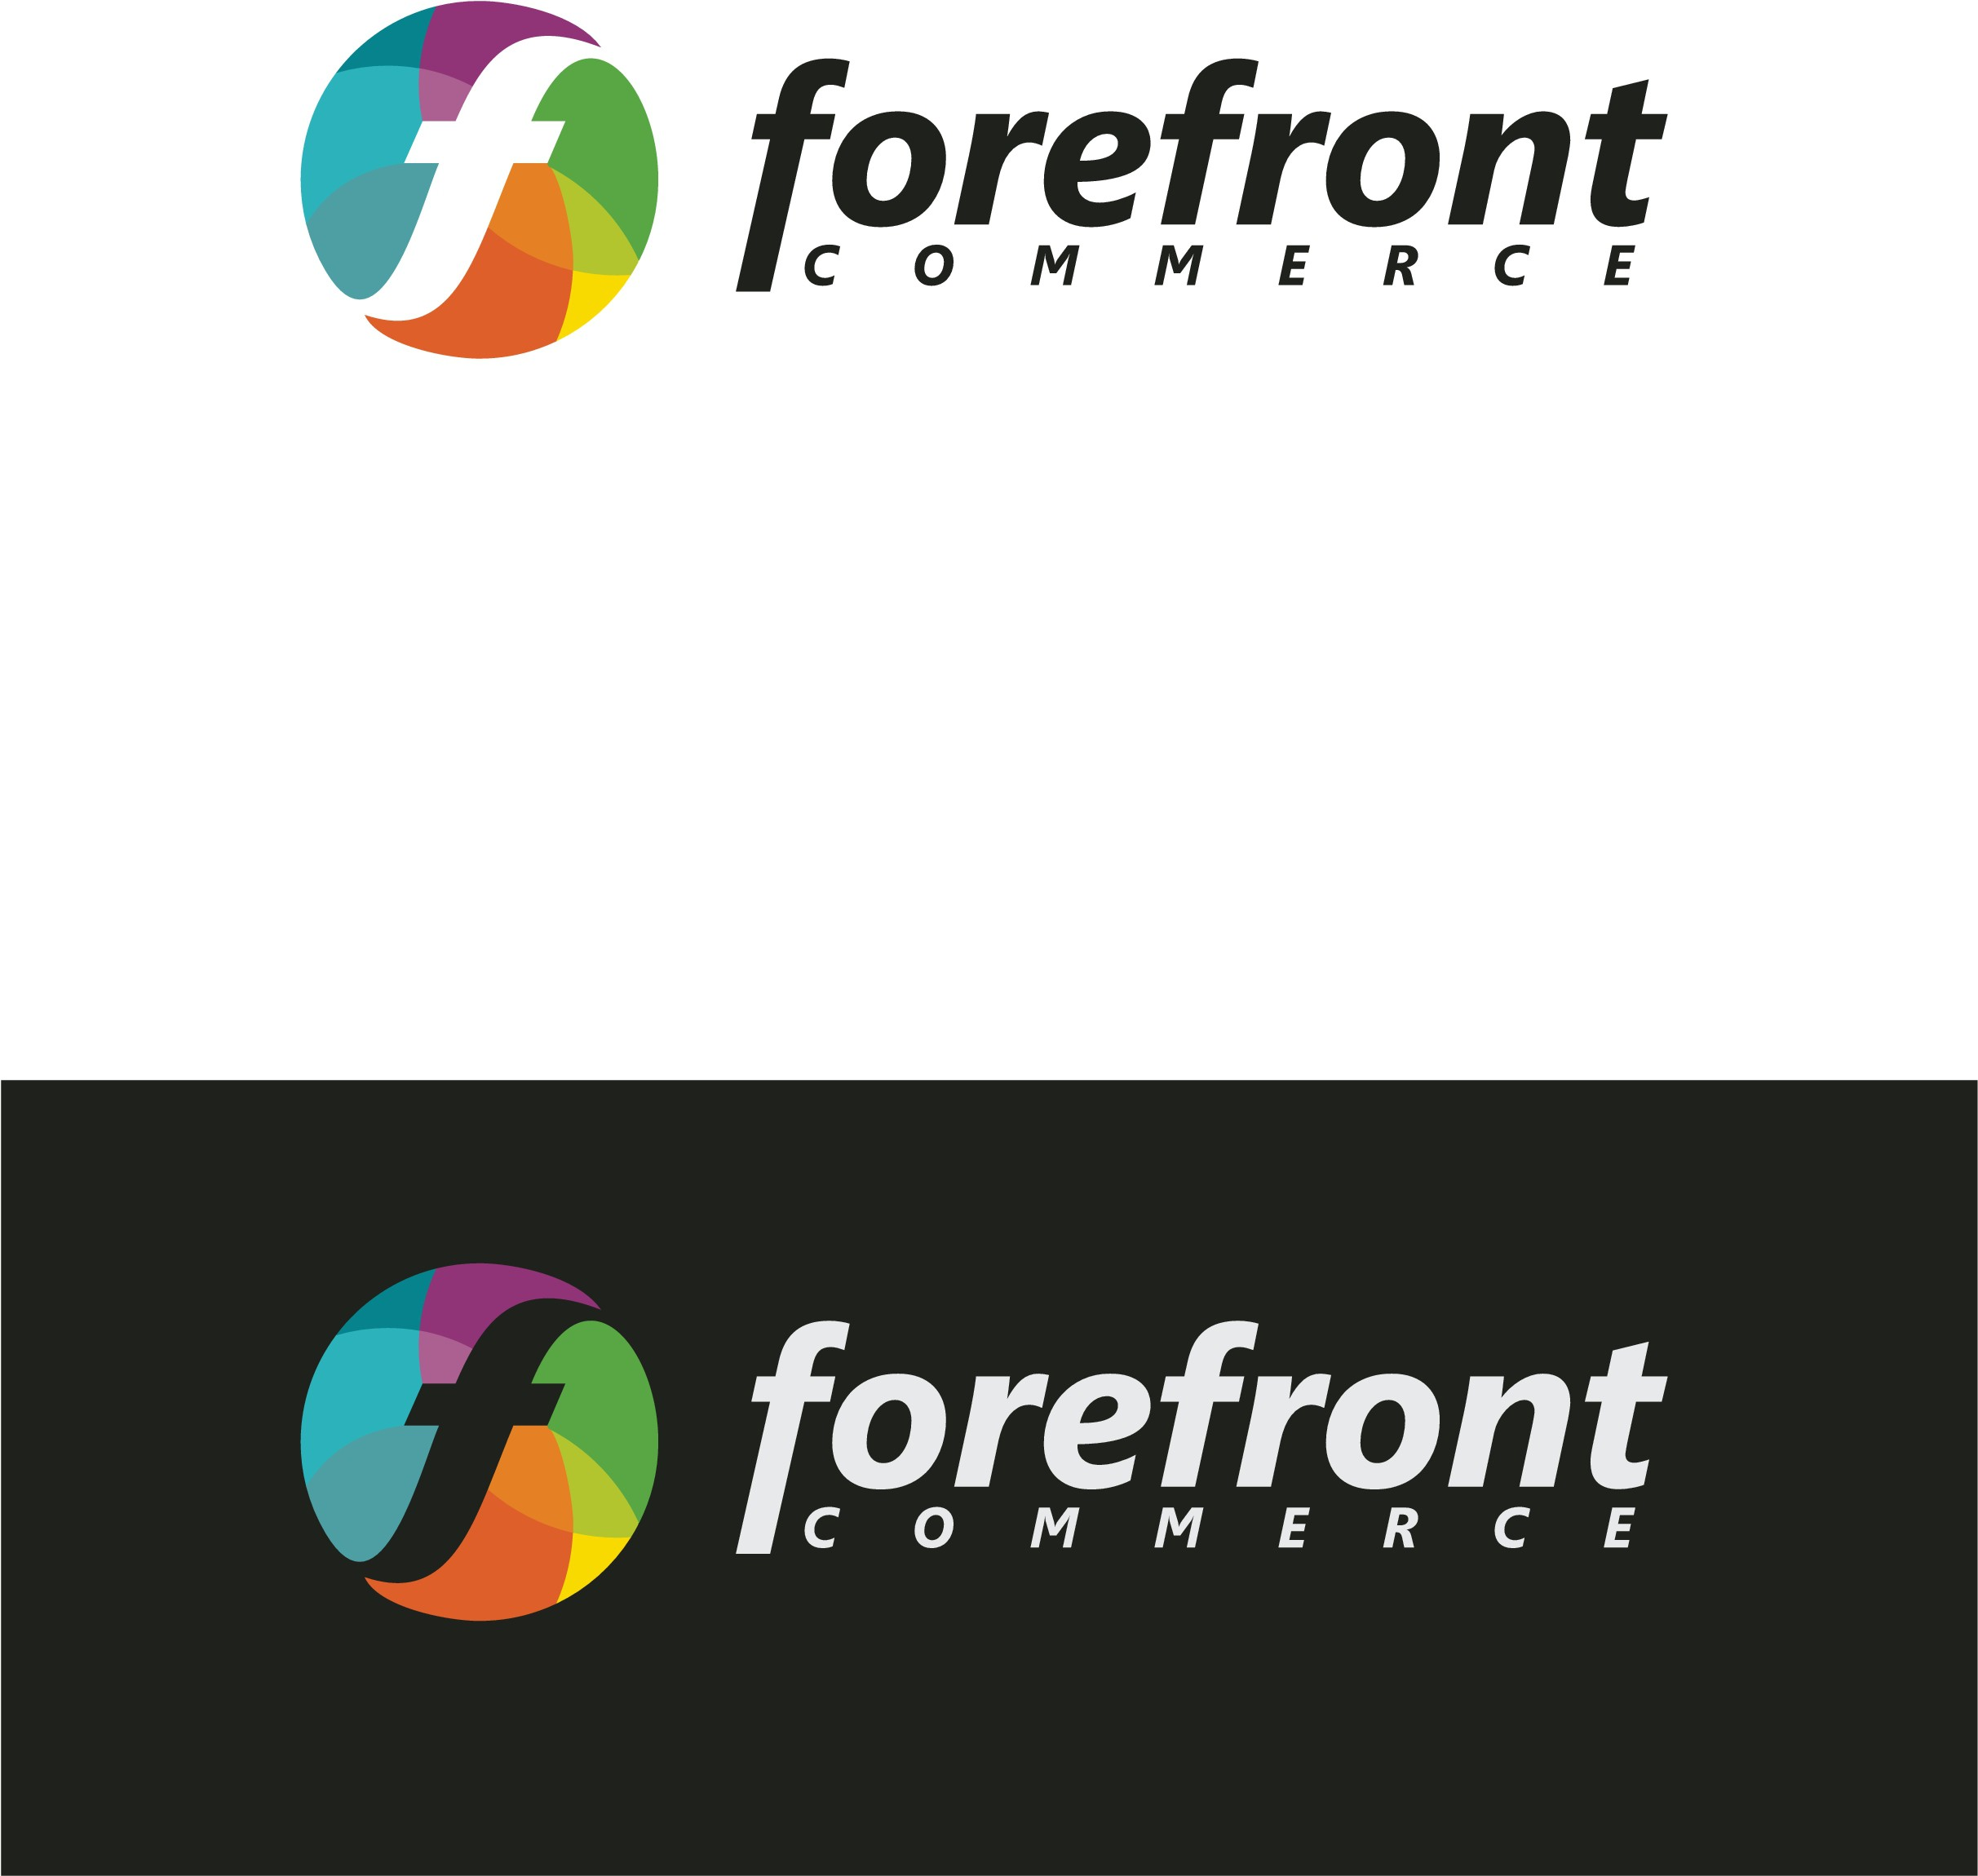 Create a fun logo to help us live up to our name, Forefront Commerce.